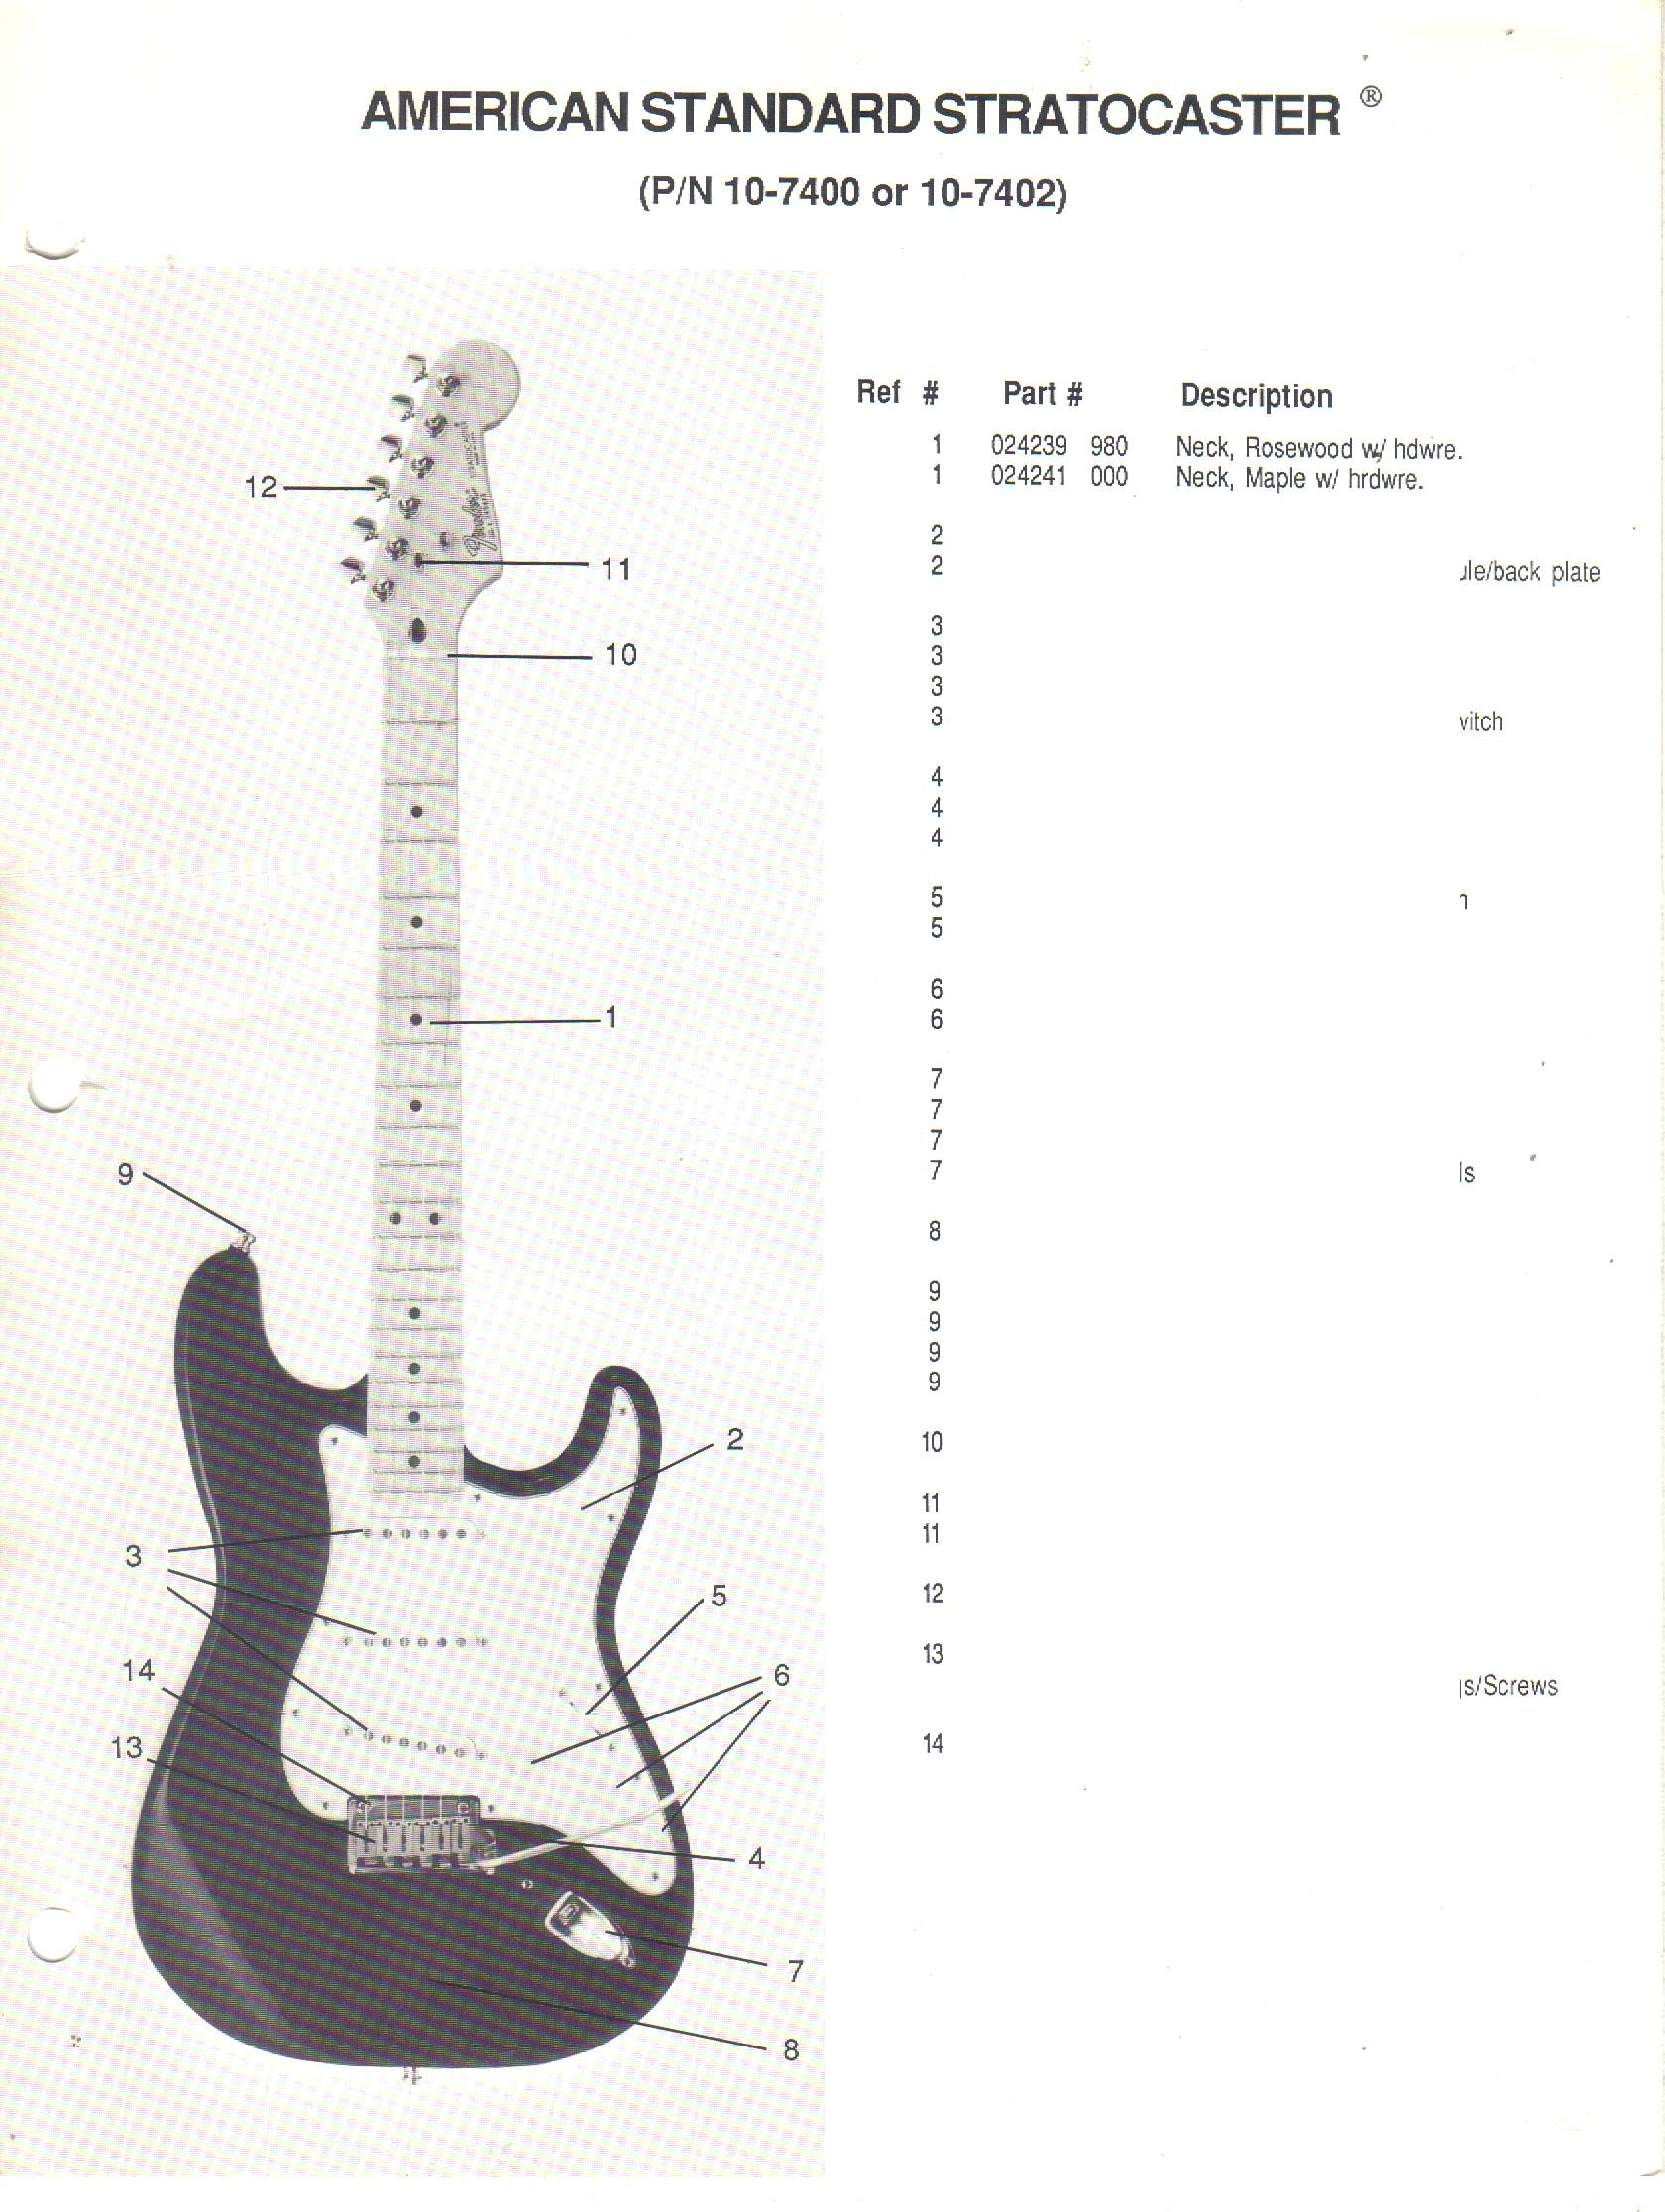 fender american standard stratocaster parts list wiring diagram fender american standard stratocaster parts list wiring diagram fender electronics sunn amazon com books